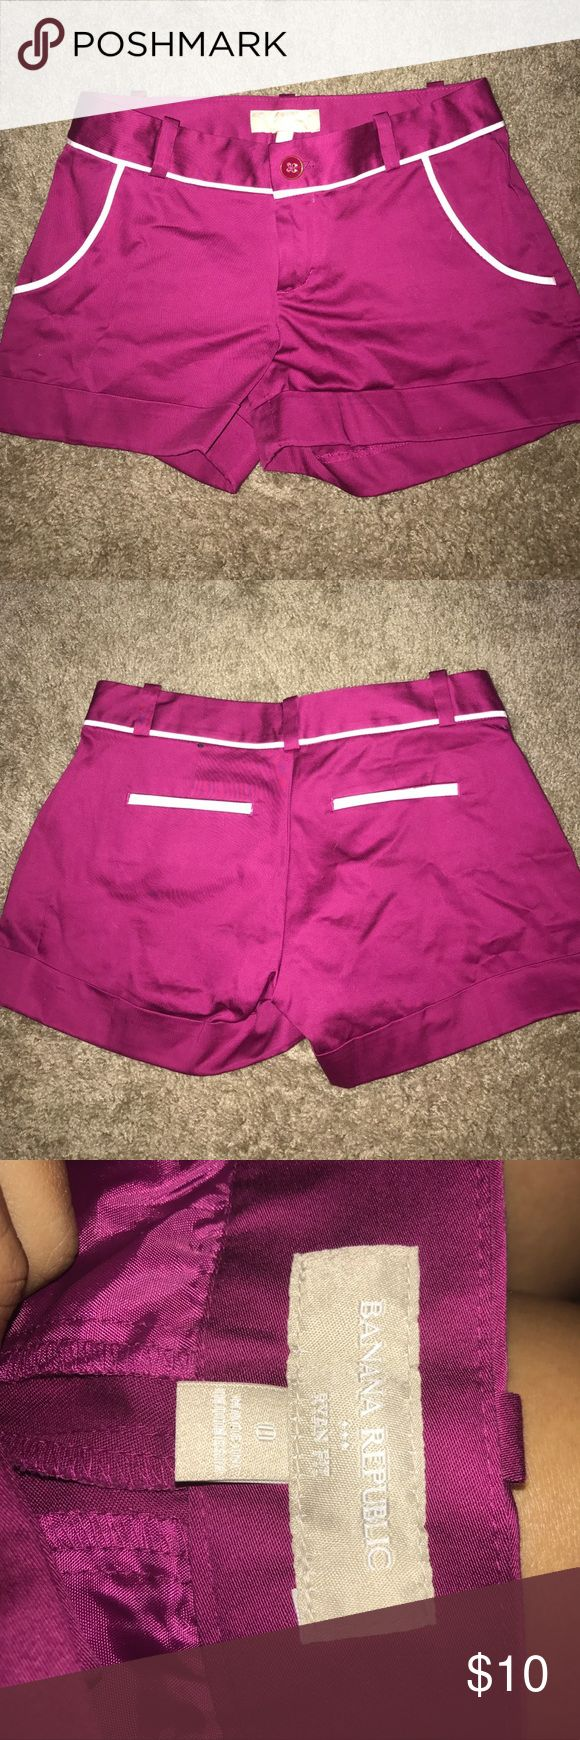 Magenta and white nice banana republic shorts Magenta and white nice banana republic shorts , size 0 , great condition , never worn , nwot , cuffed bottoms , Ryan fit Banana Republic Shorts